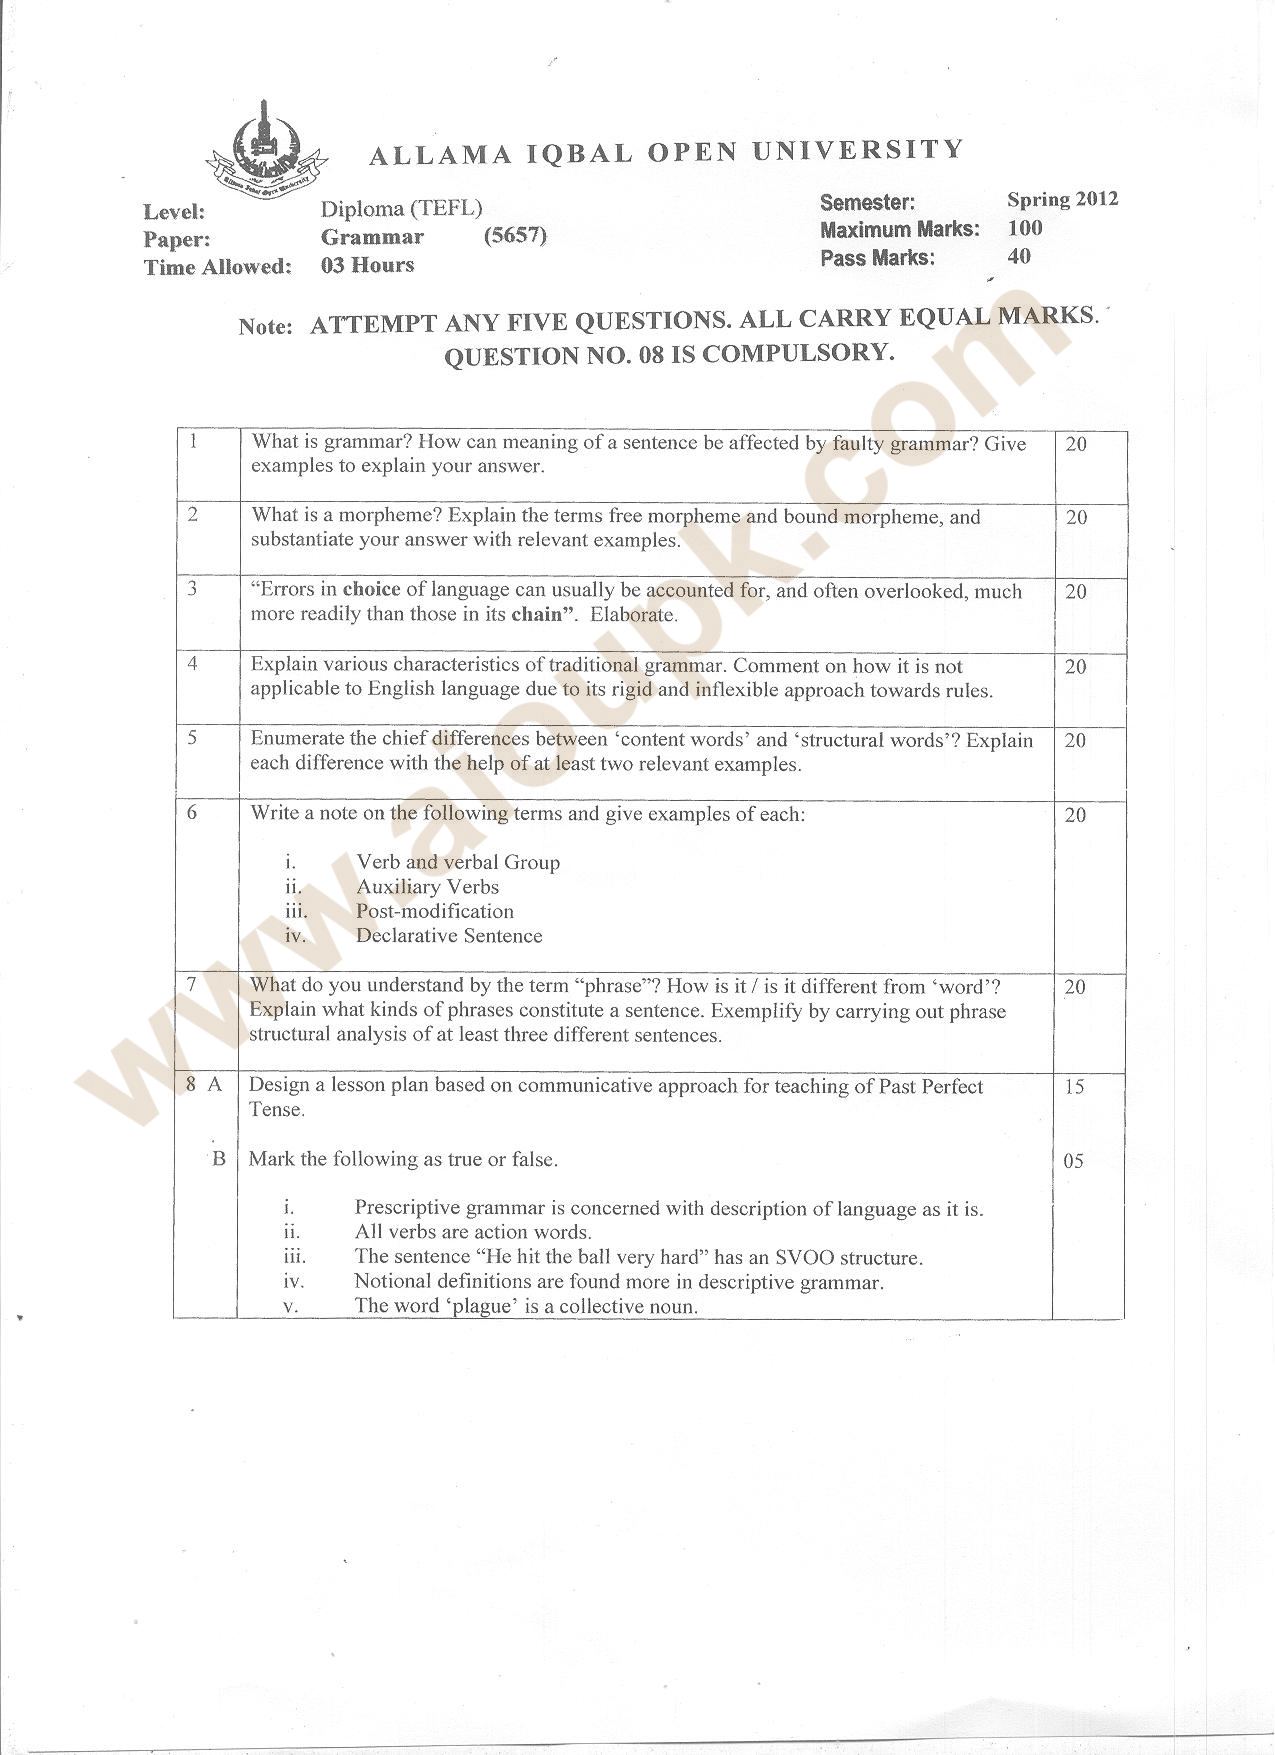 aiou tefl thesis New programmes for aiou as these groups pertain to already offered courses of the thesis 04 semesters 62 msc (hons) rural 51 diploma tefl spring.